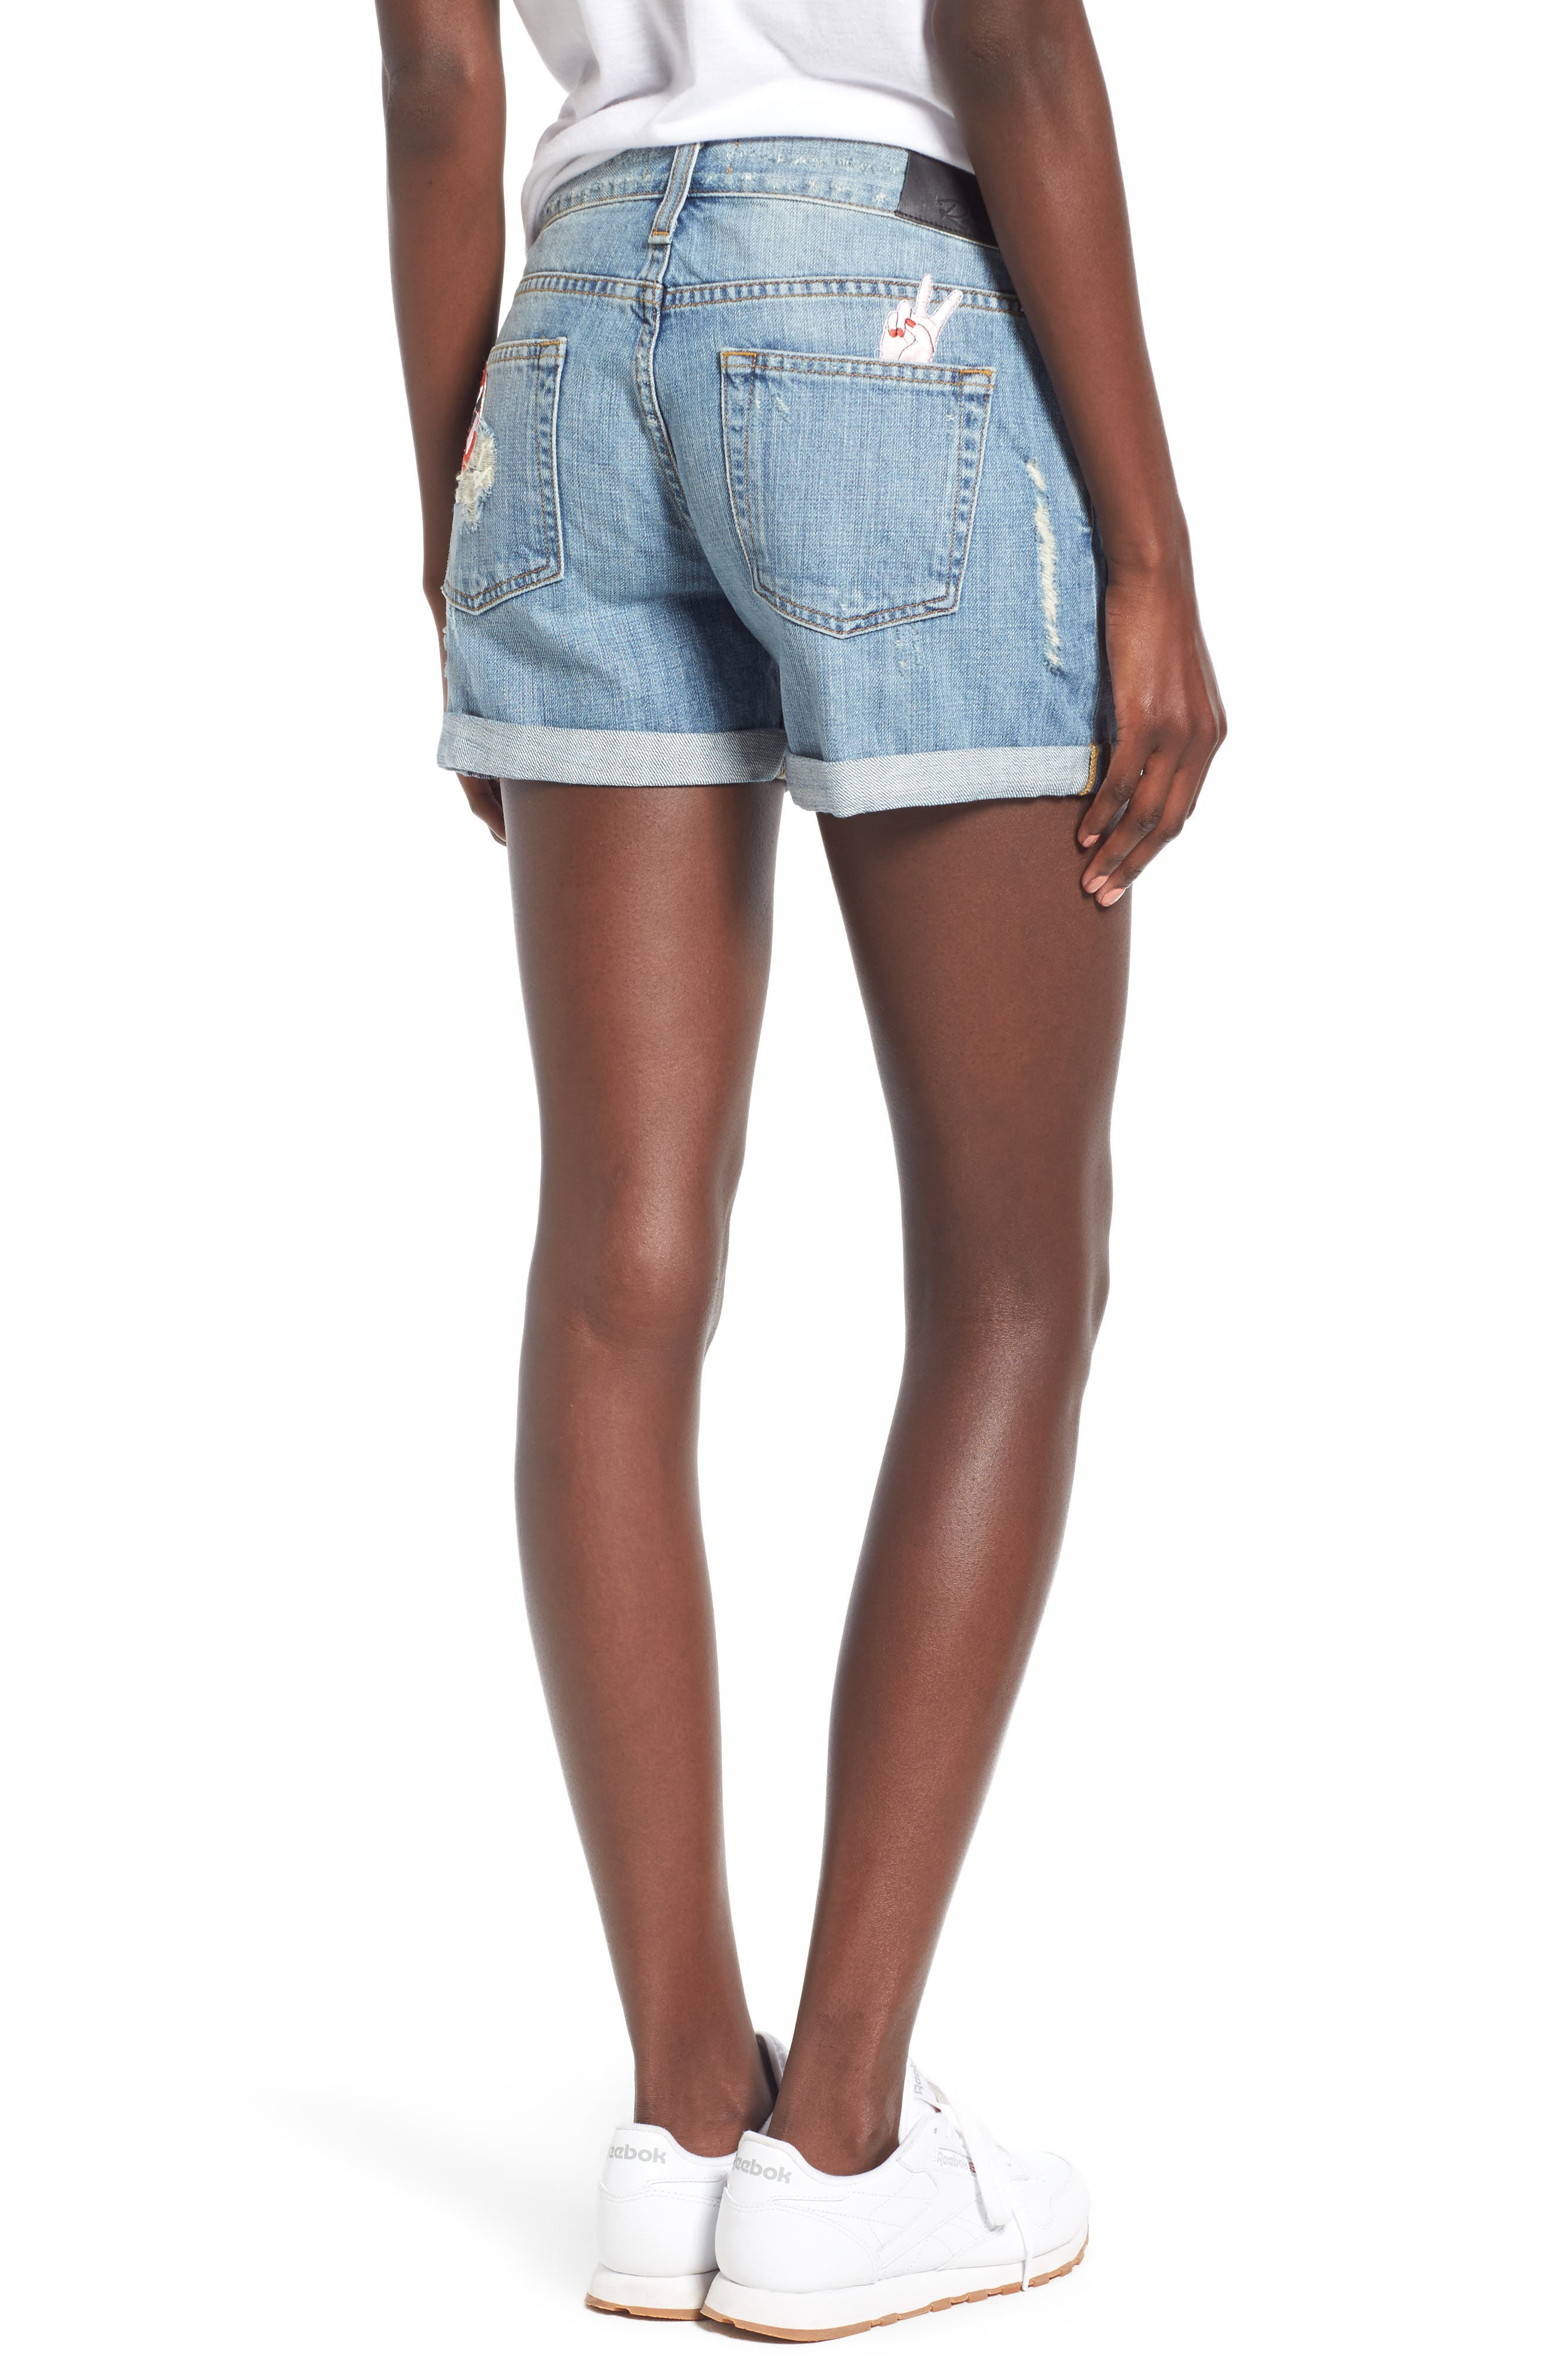 Logan Patch Denim Shorts,                             Alternate thumbnail 2, color,                             Medium Vintage Wash